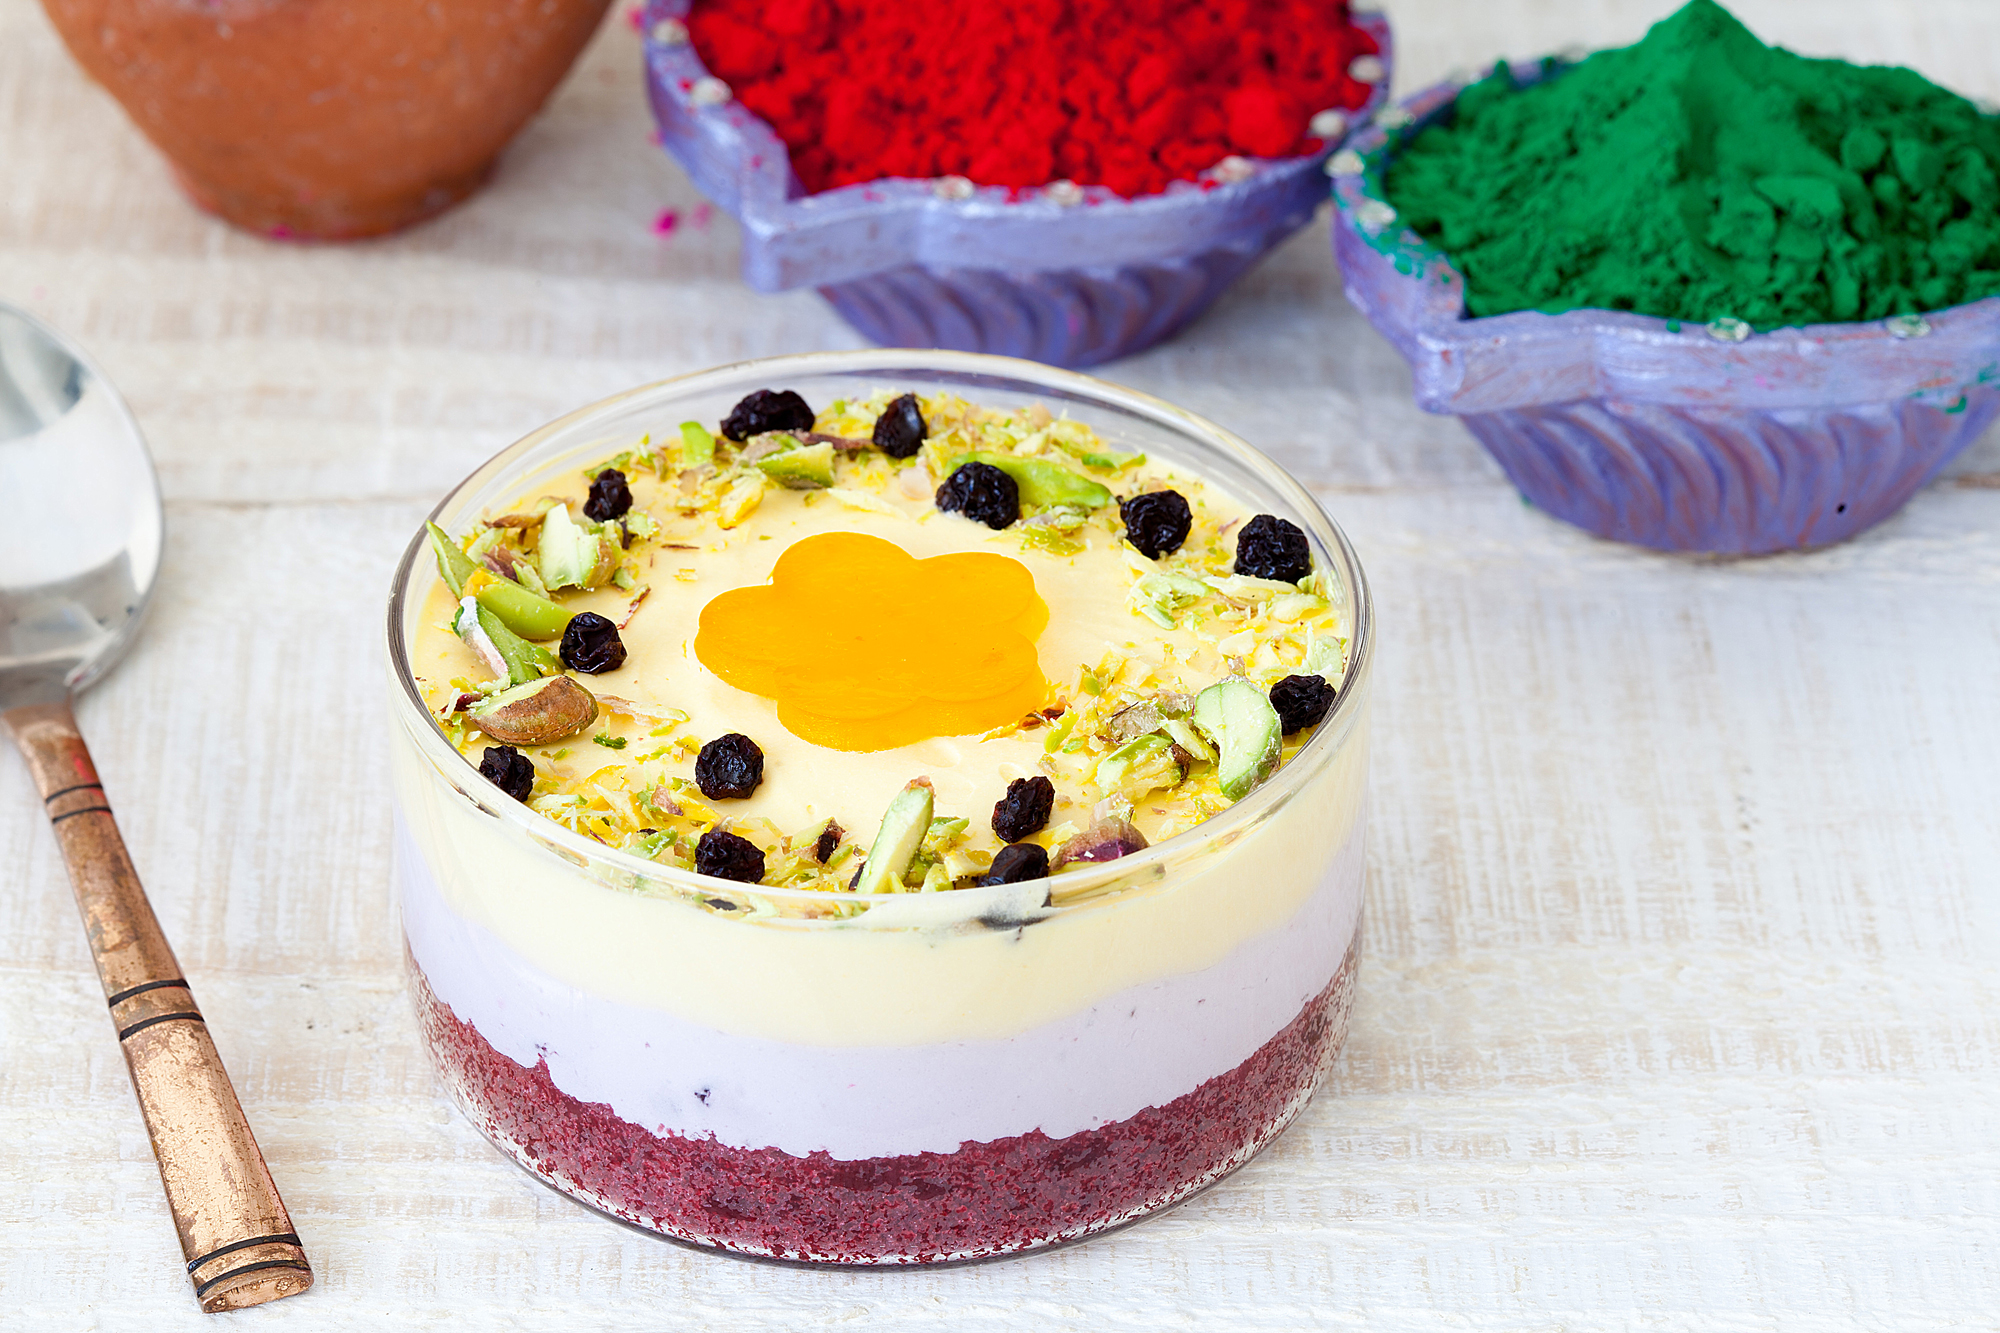 _18FMIMG_Mango Blueberry Mousse (Eggless).JPG